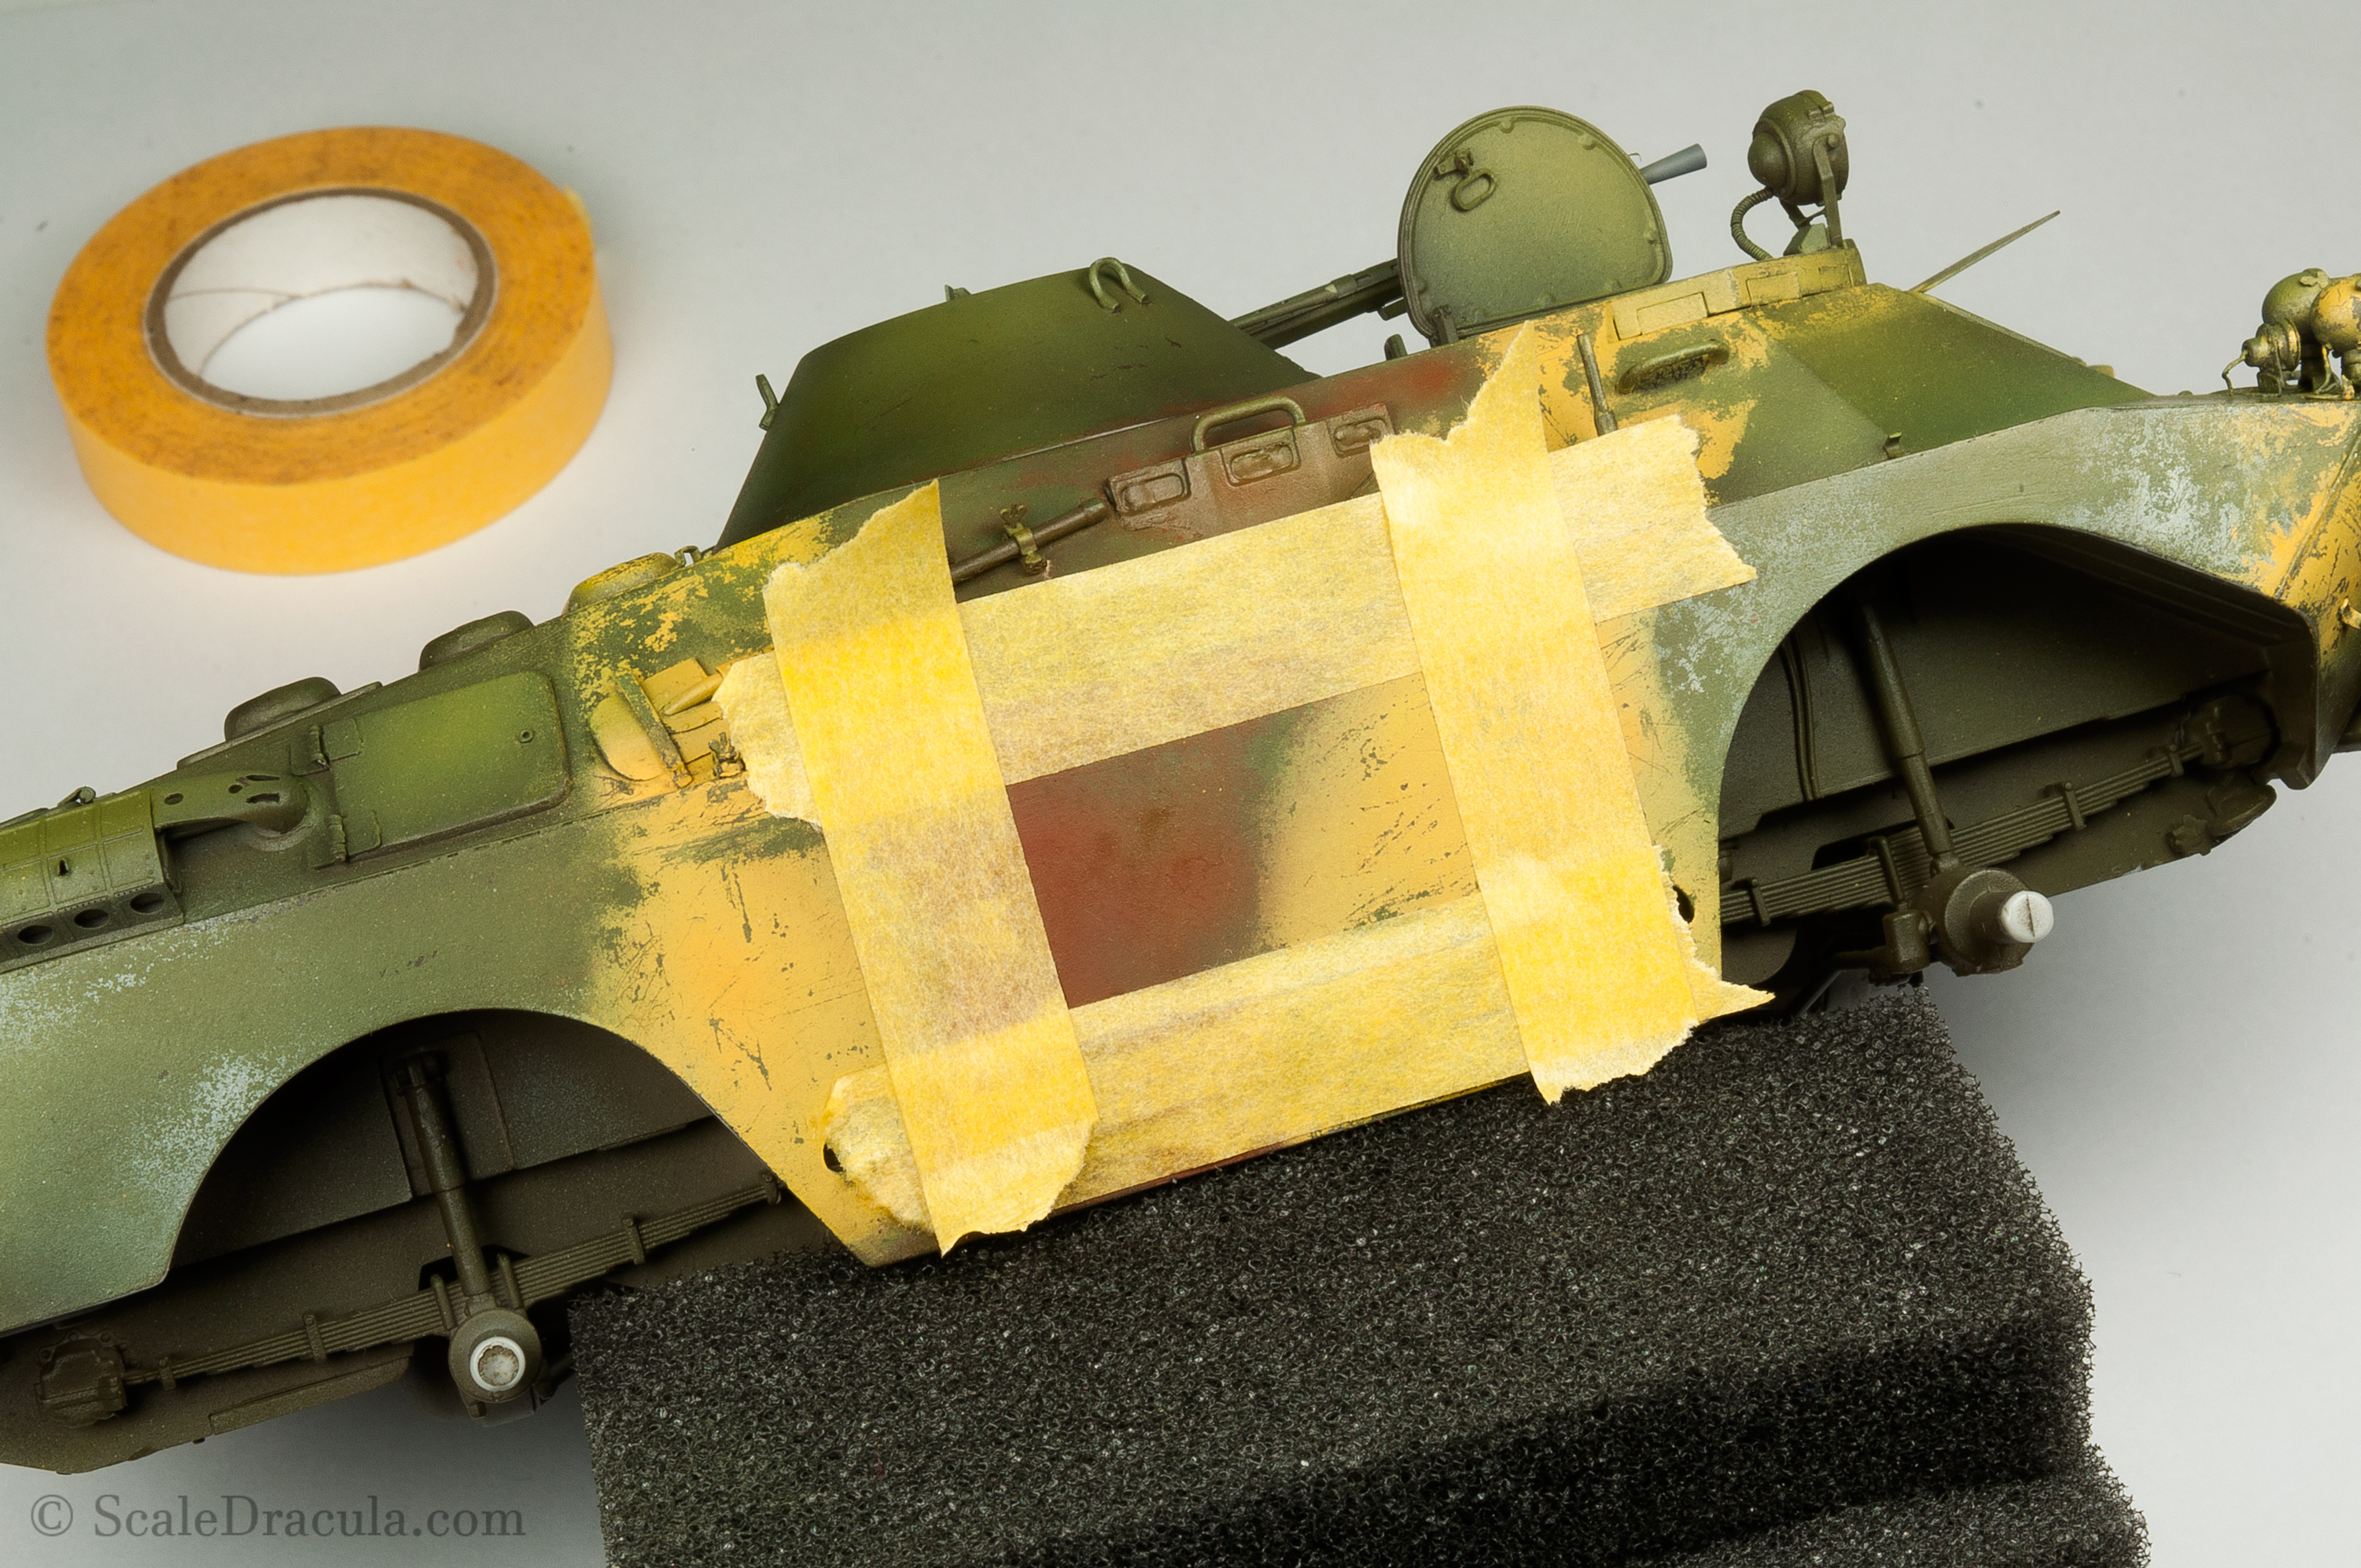 Masking with Tamiya tape, BRDM-2 by Trumpeter